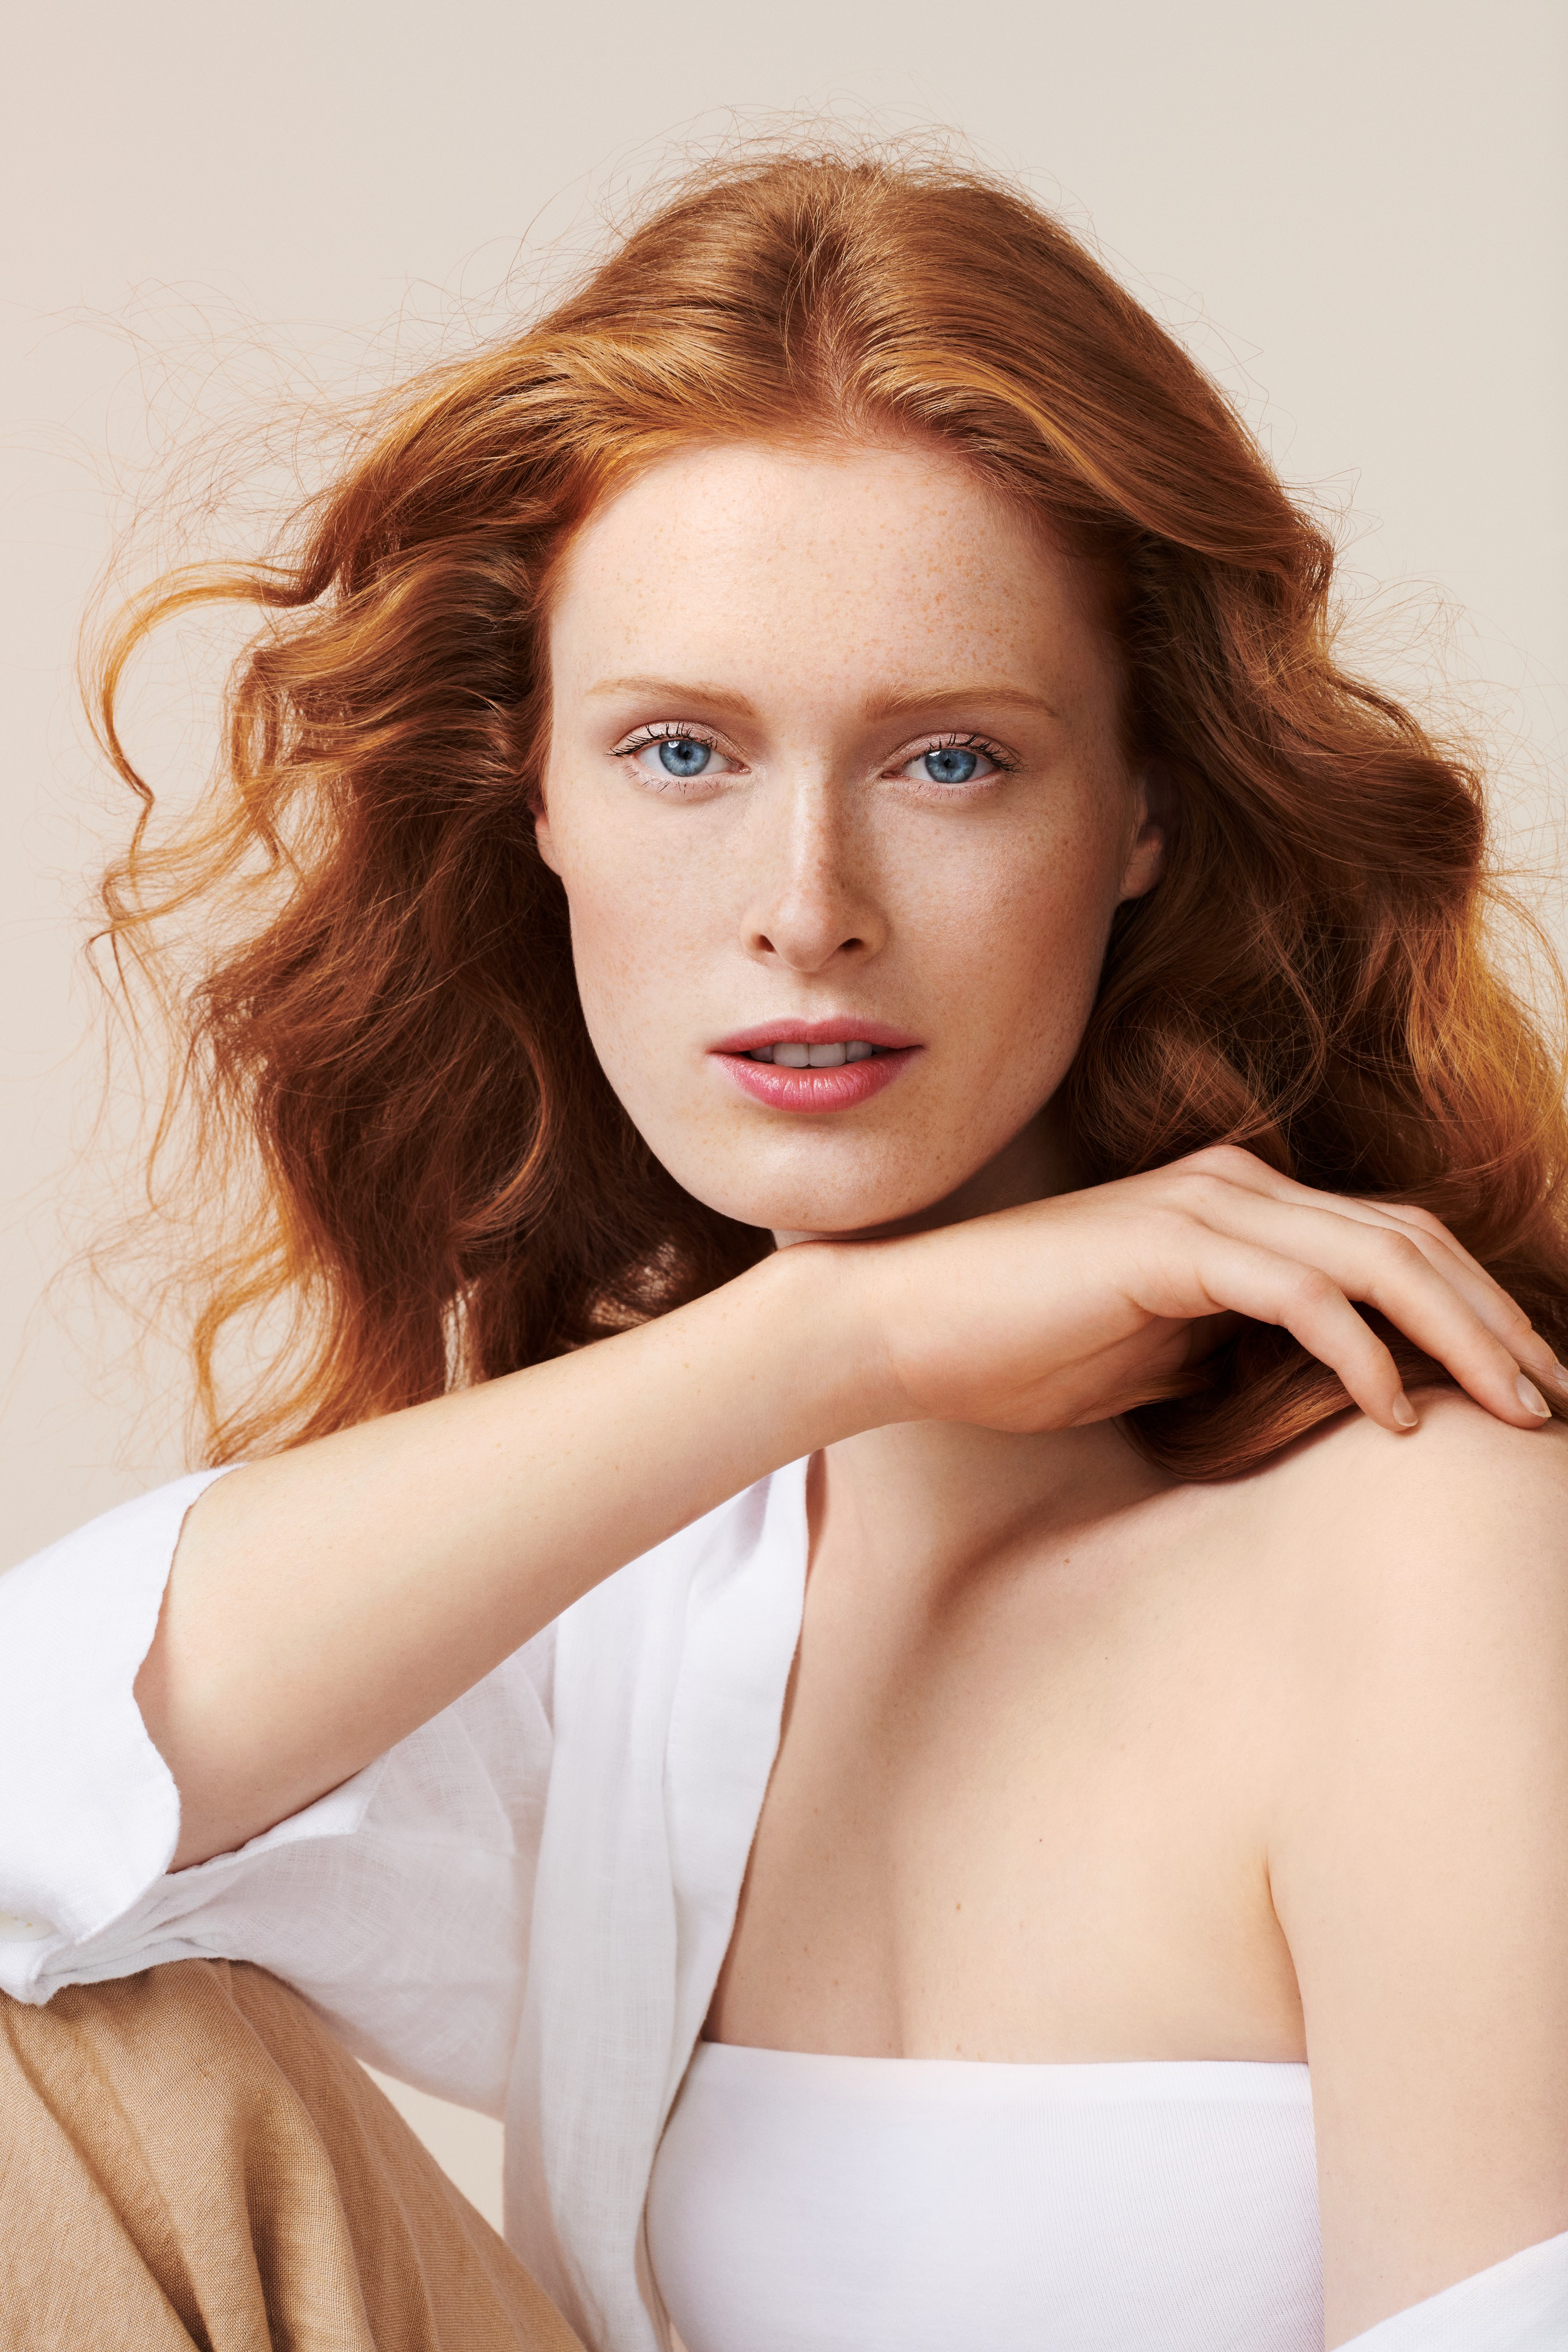 Crosscategory-beautyvisual-red-hair-arm-v1-092022-Web-Rendition